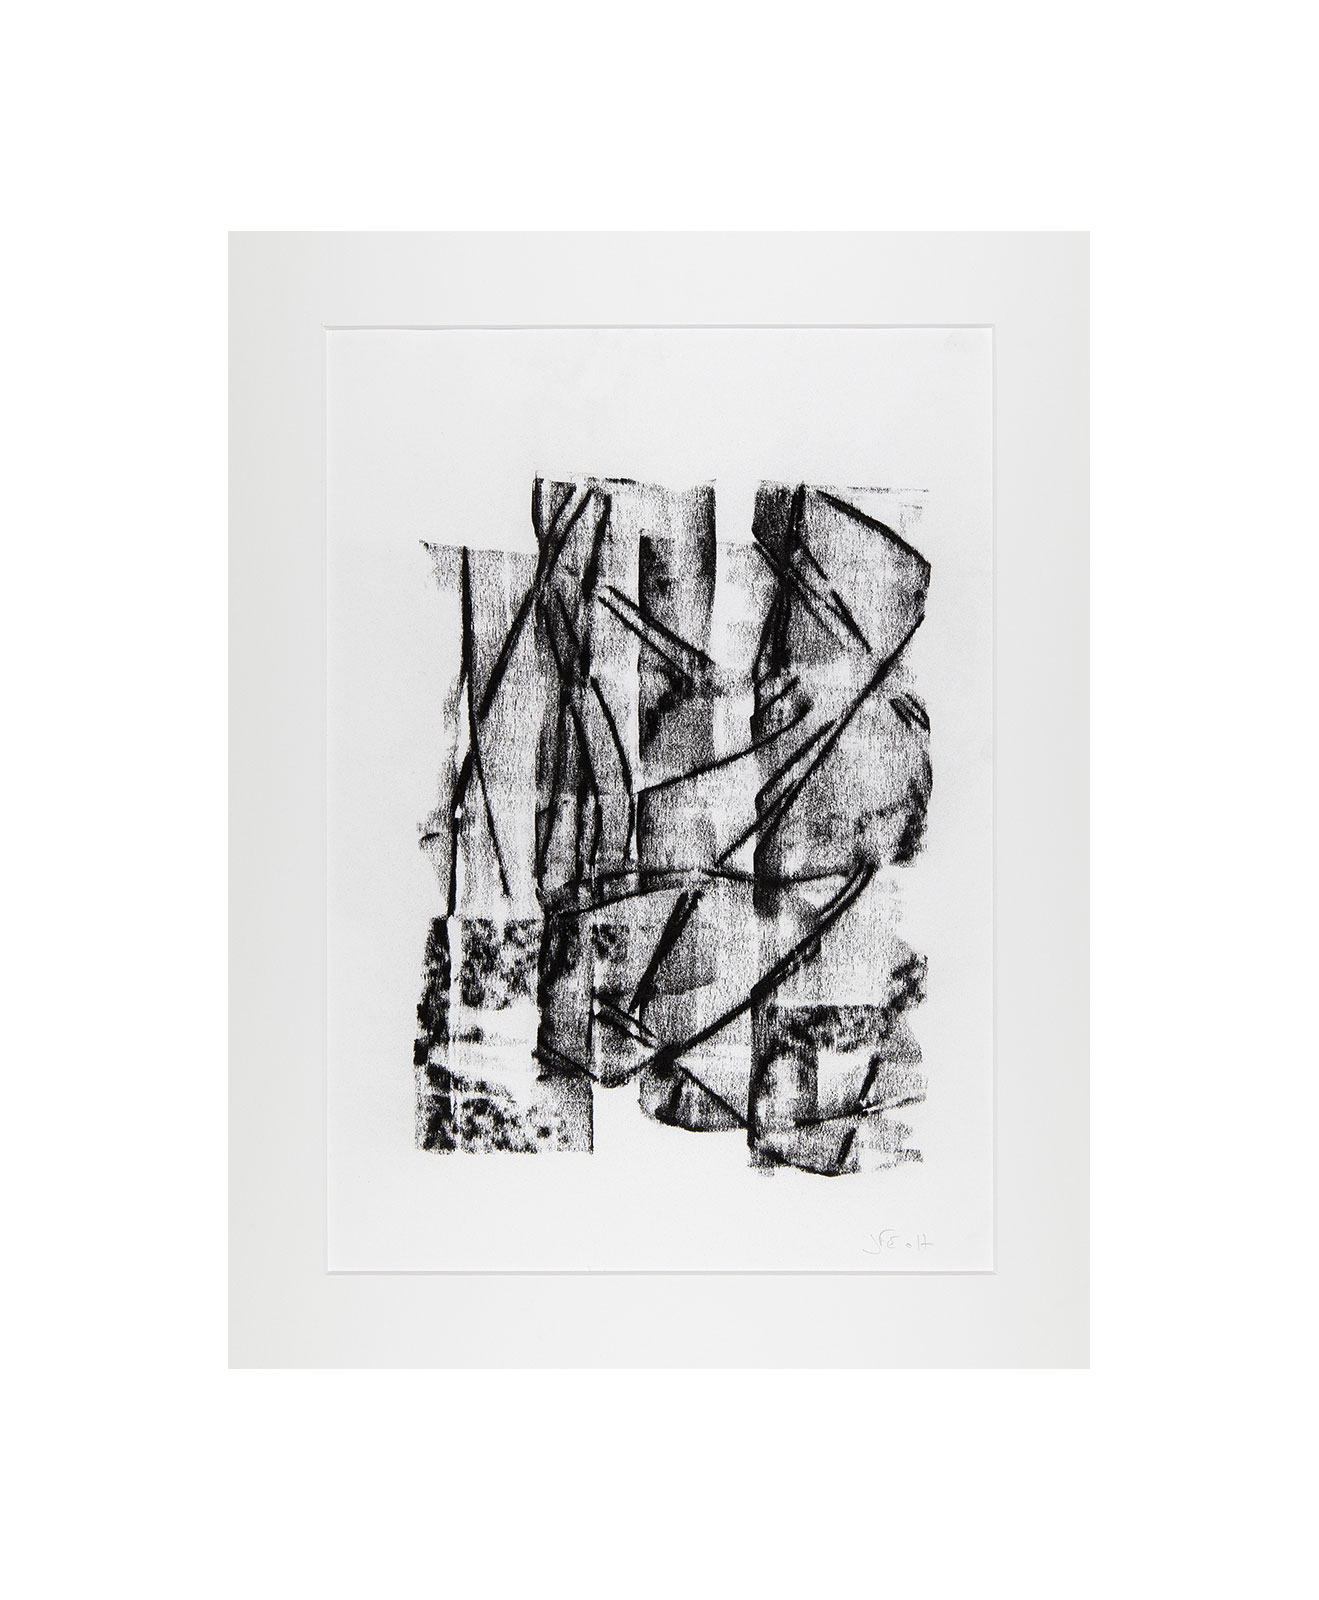 Cha 1.6, Charcoal on paper, black and white artwork, drawing, jf escande, contemporary art